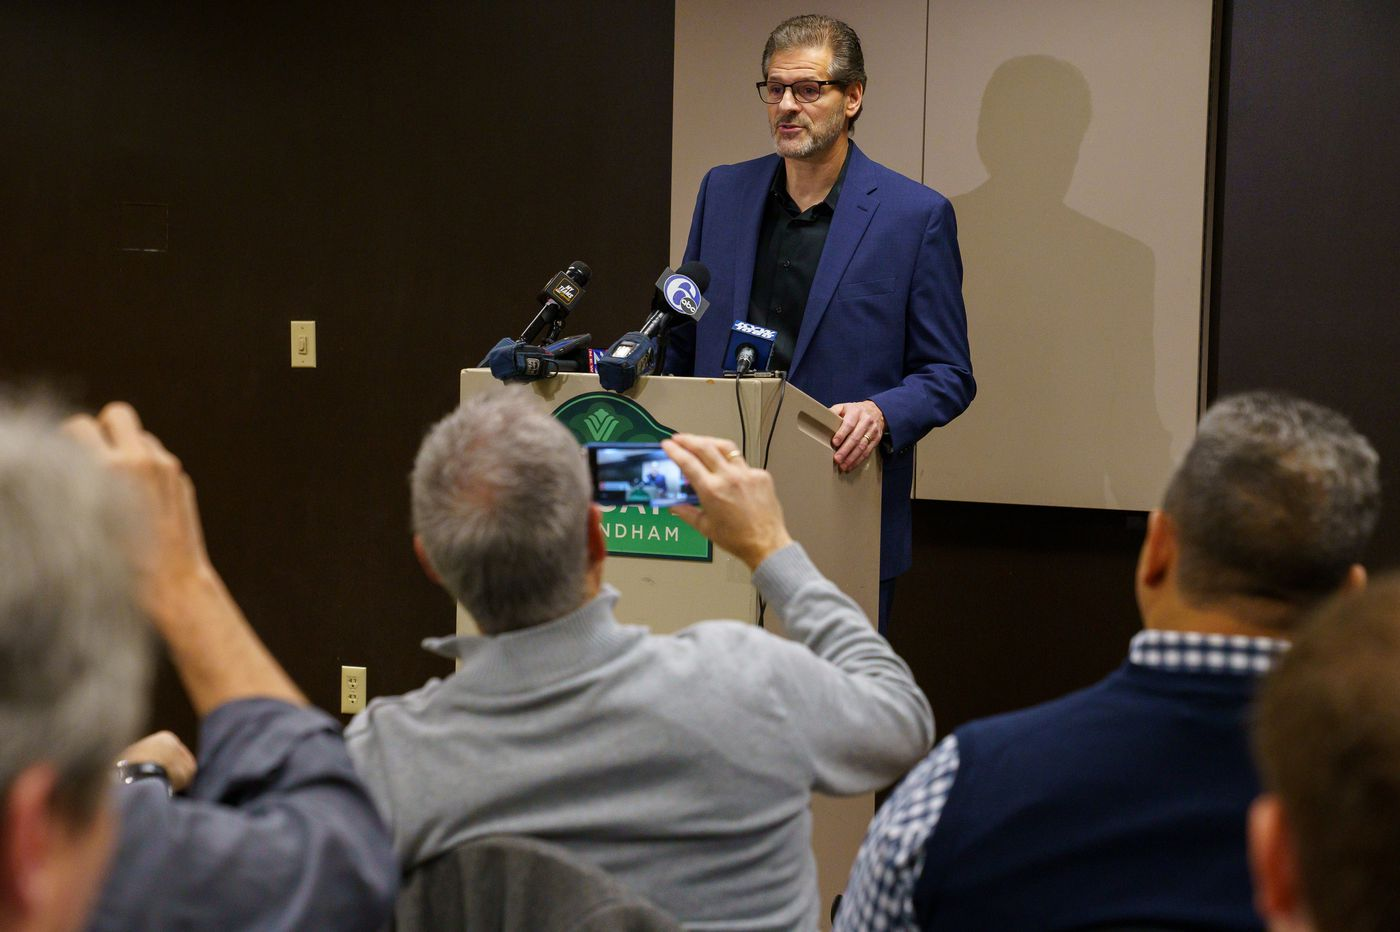 Former Flyers GM Ron Hextall blindsided by firing: 'I didn't see this coming'